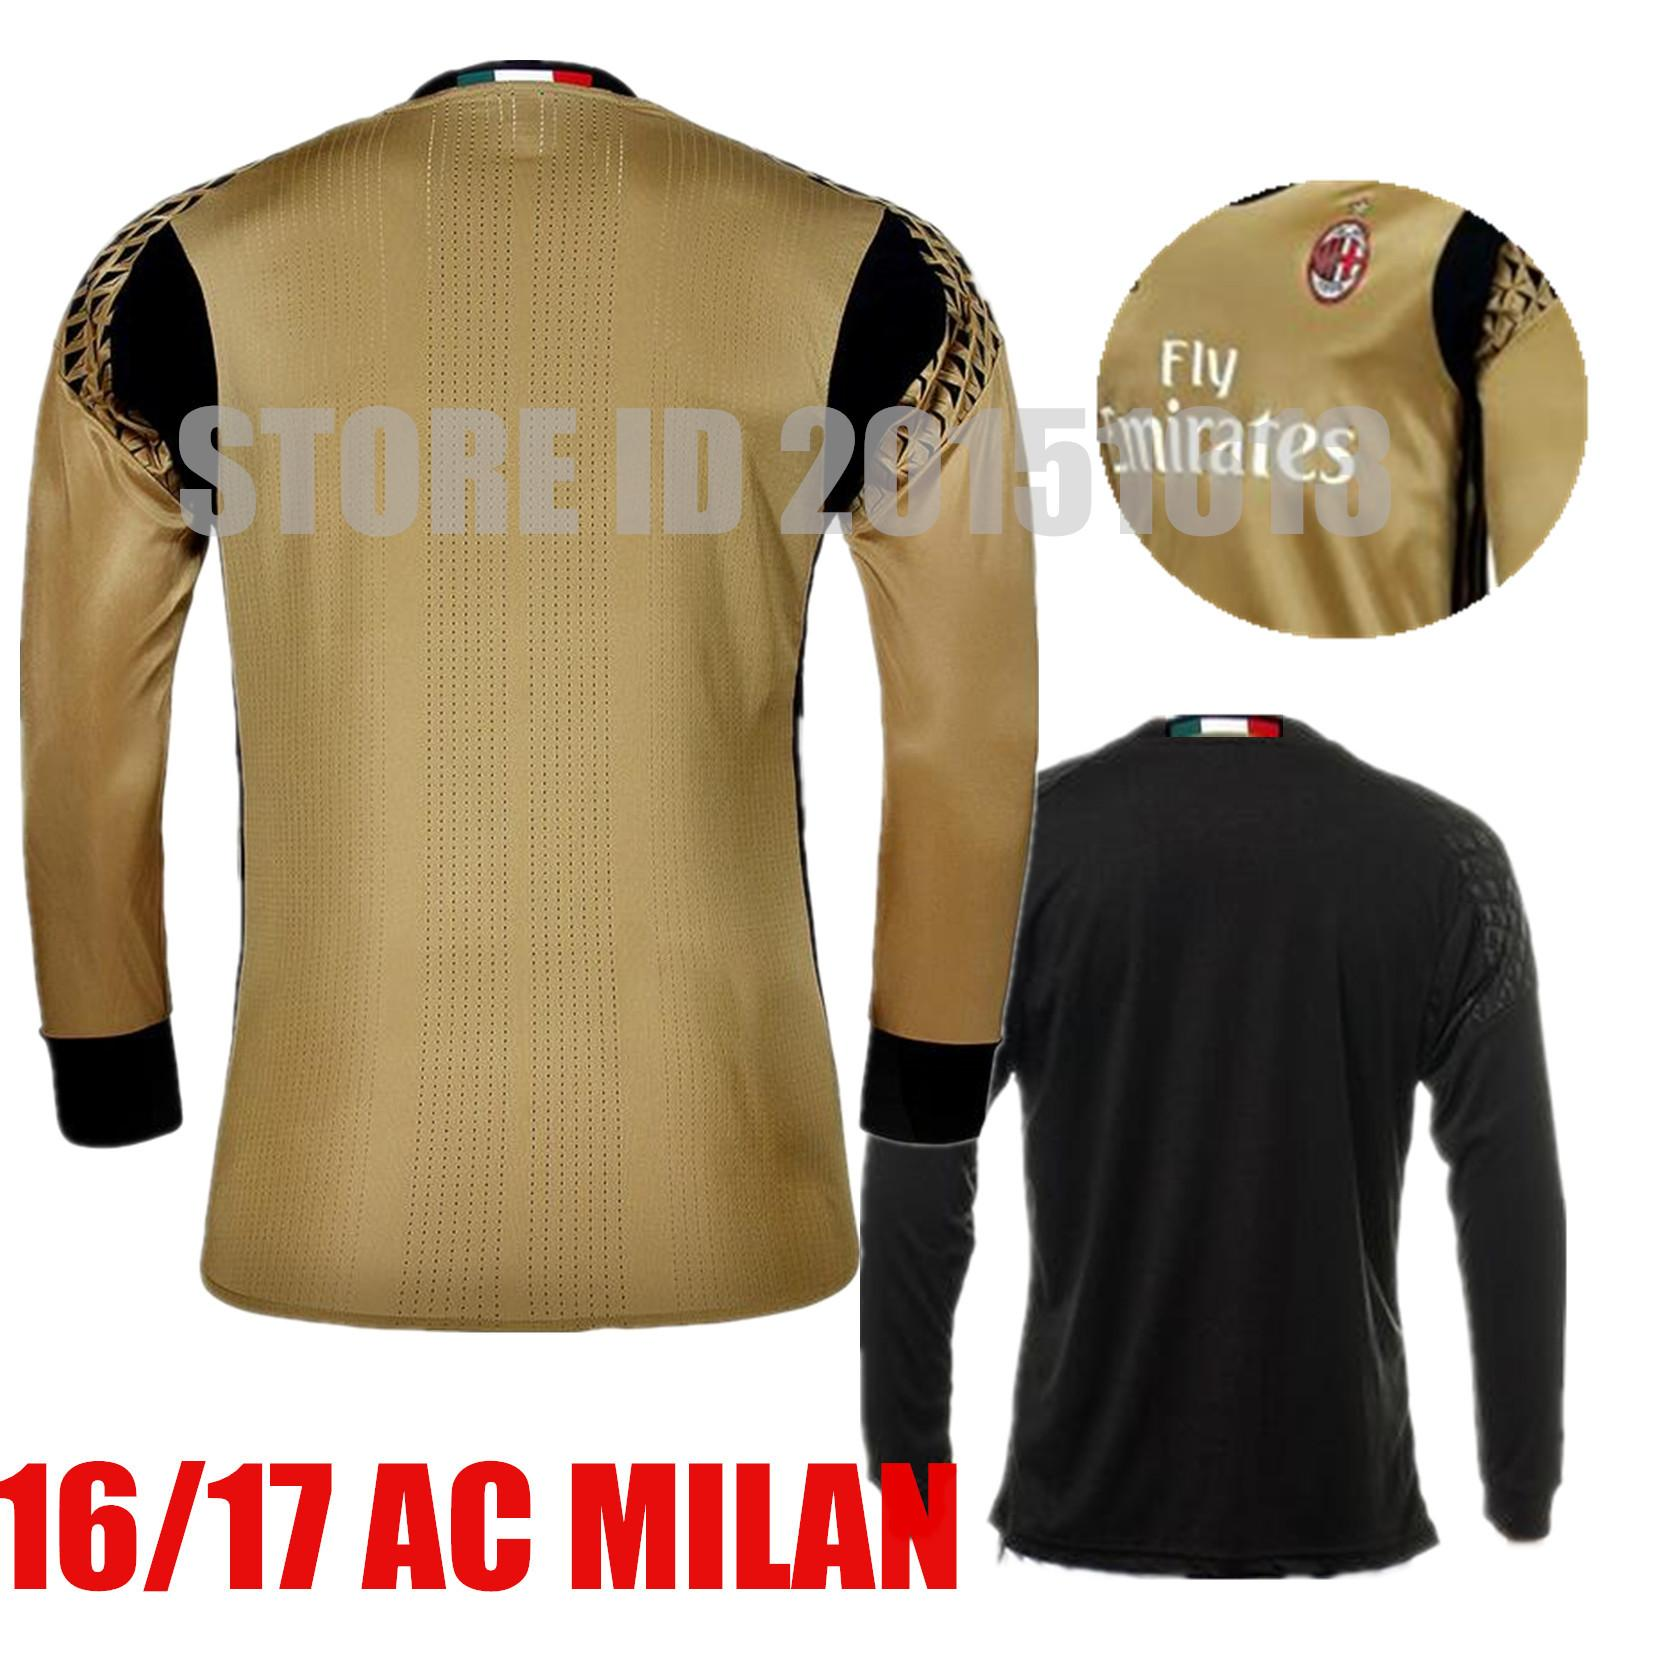 2017 manches longues AC Milan Gardien de football chandails 99 Gianluigi Donnaru